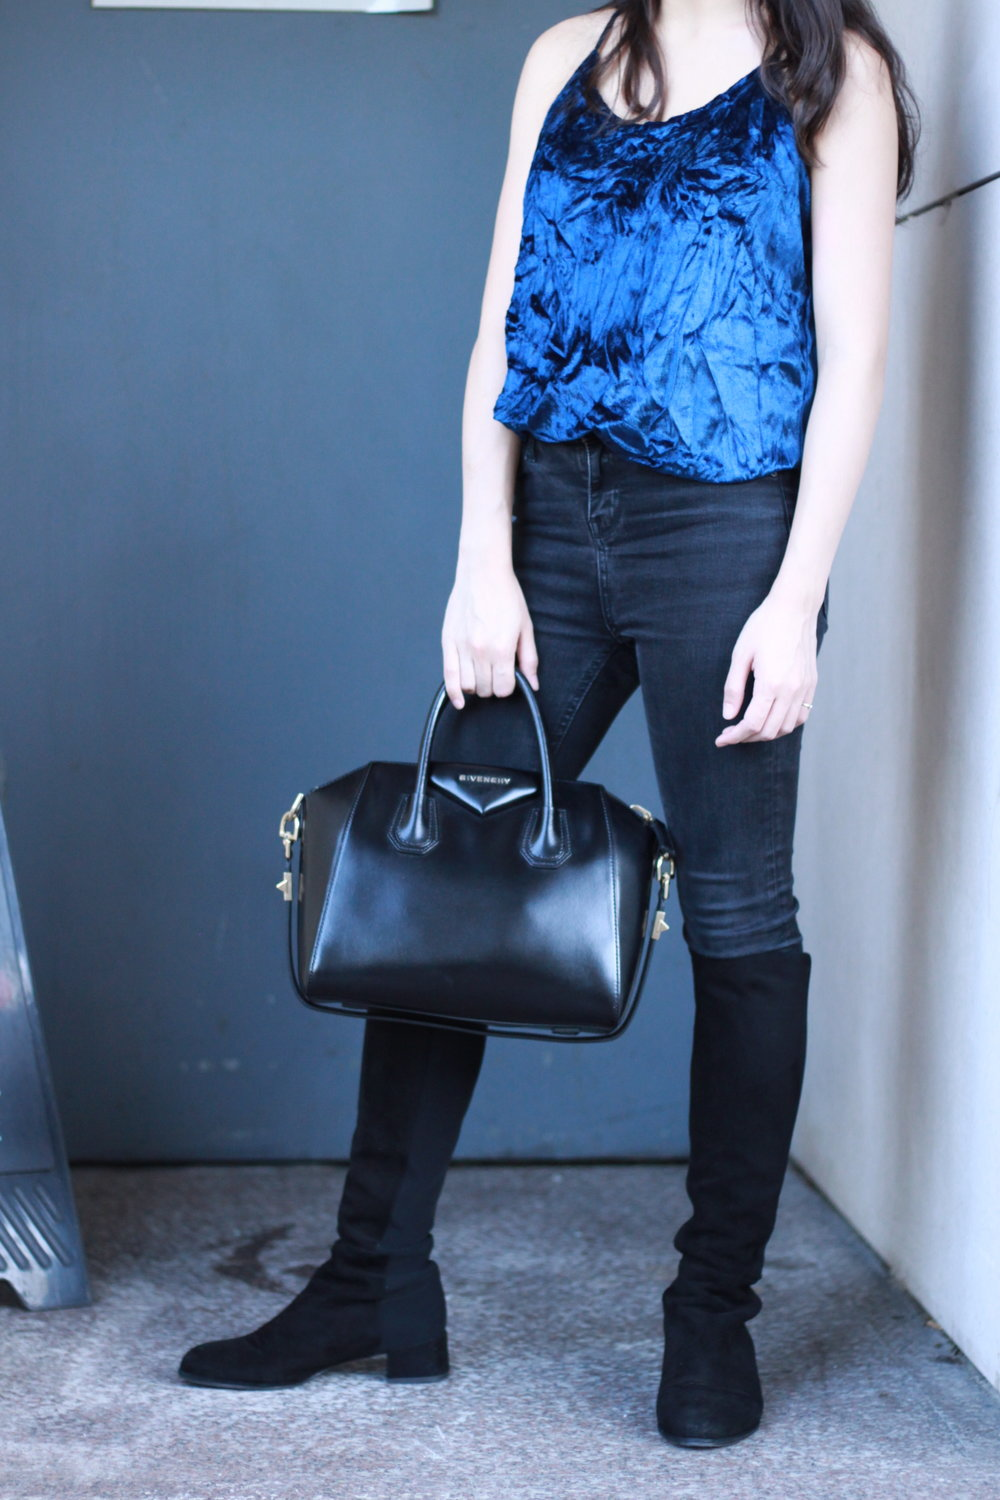 On JongSin: Velvet top / Denim jeans / Stewart Weitzman over-the-knee boots / Givenchy